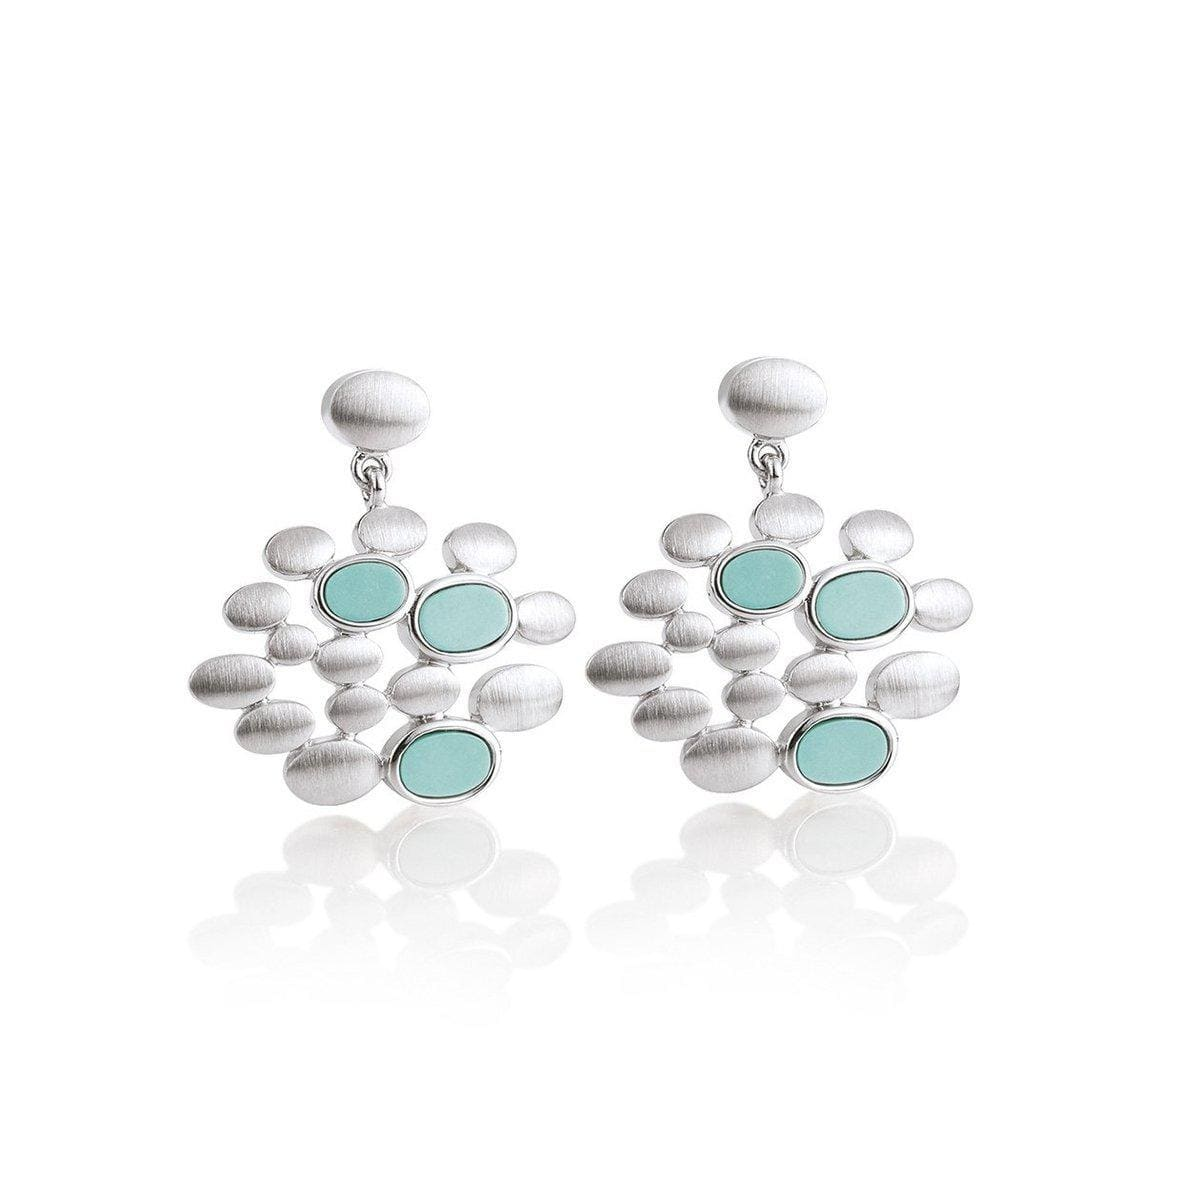 Rhodium Plated Sterling Silver Turquoise Earrings - 12/02017-Breuning-Renee Taylor Gallery